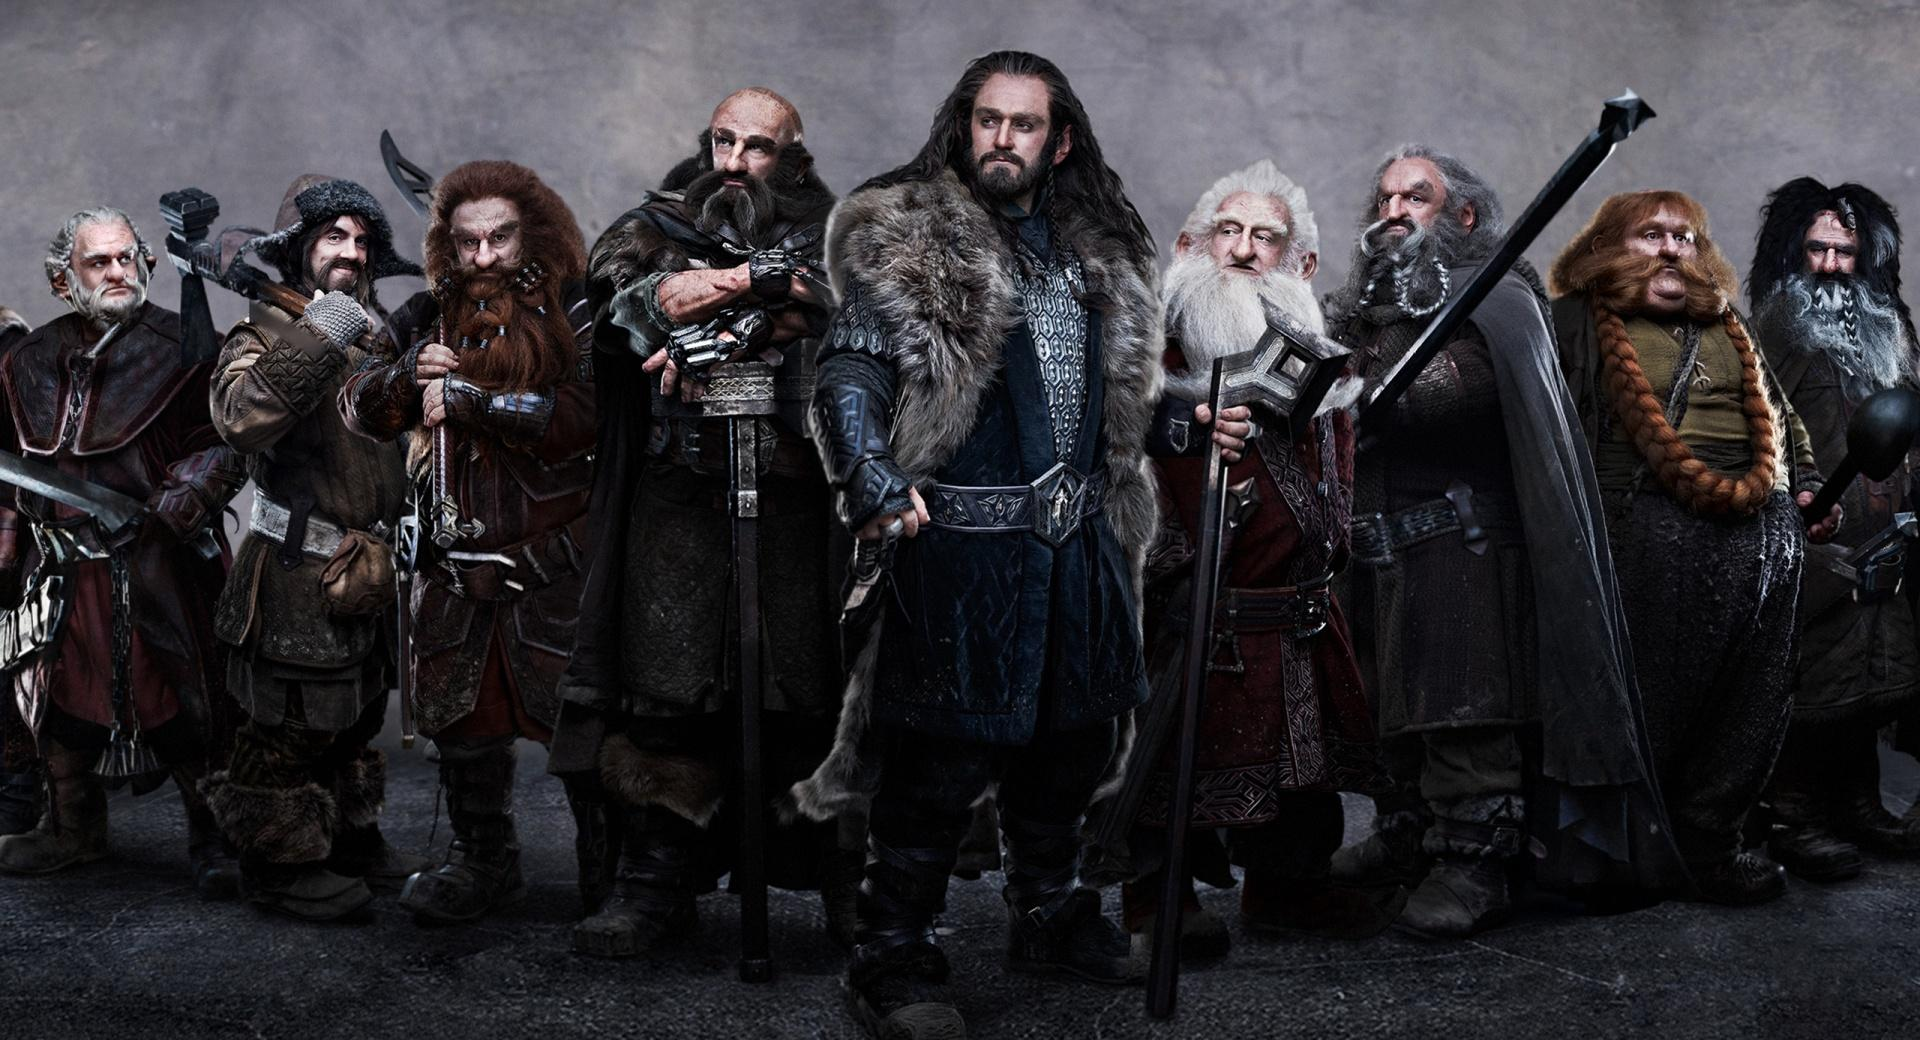 The Hobbit Dwarves wallpapers HD quality